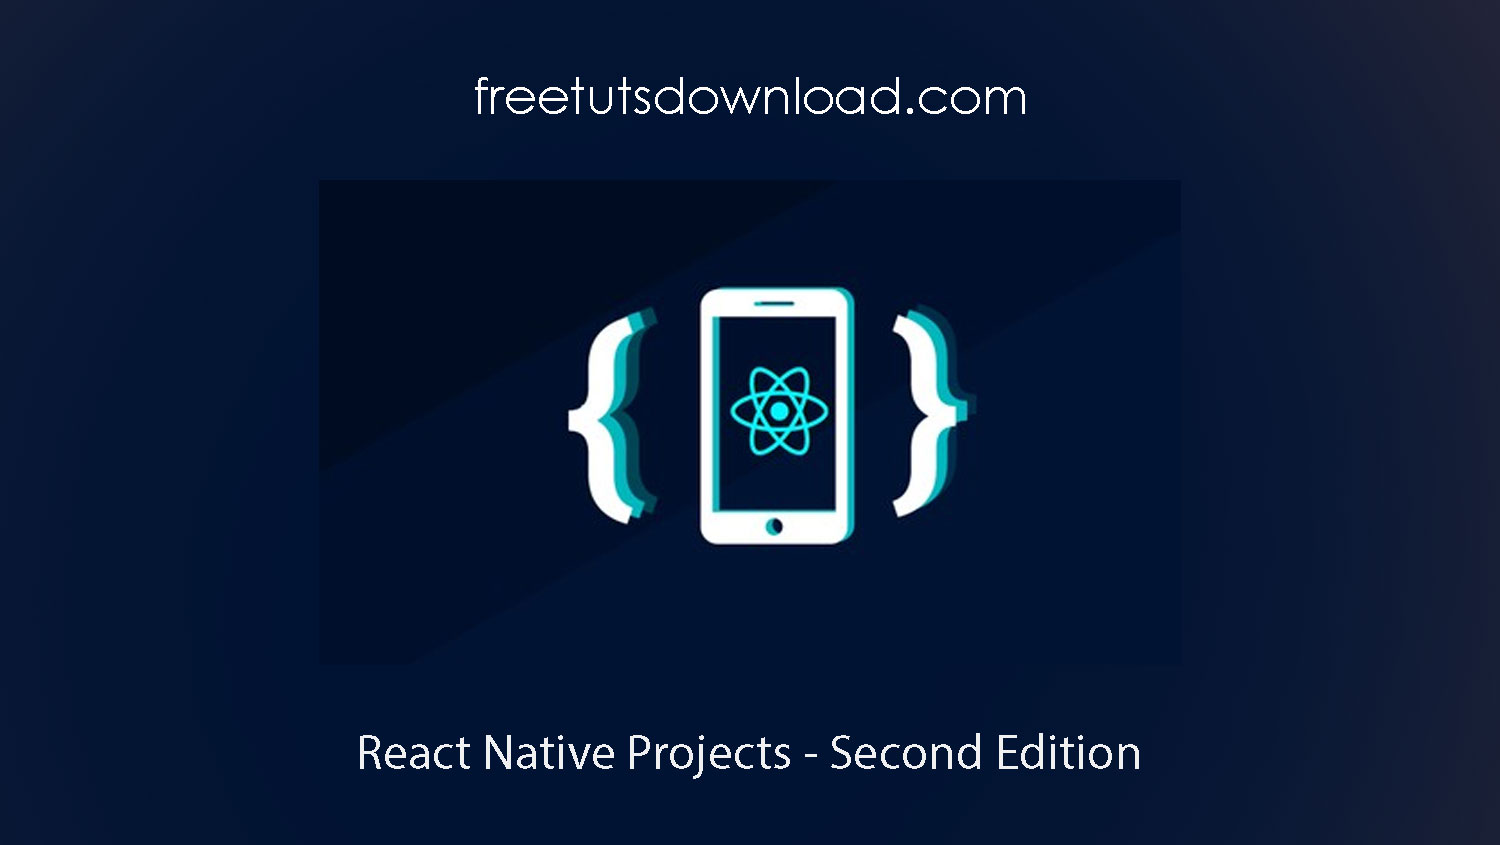 React Native Projects - Second Edition Free Download